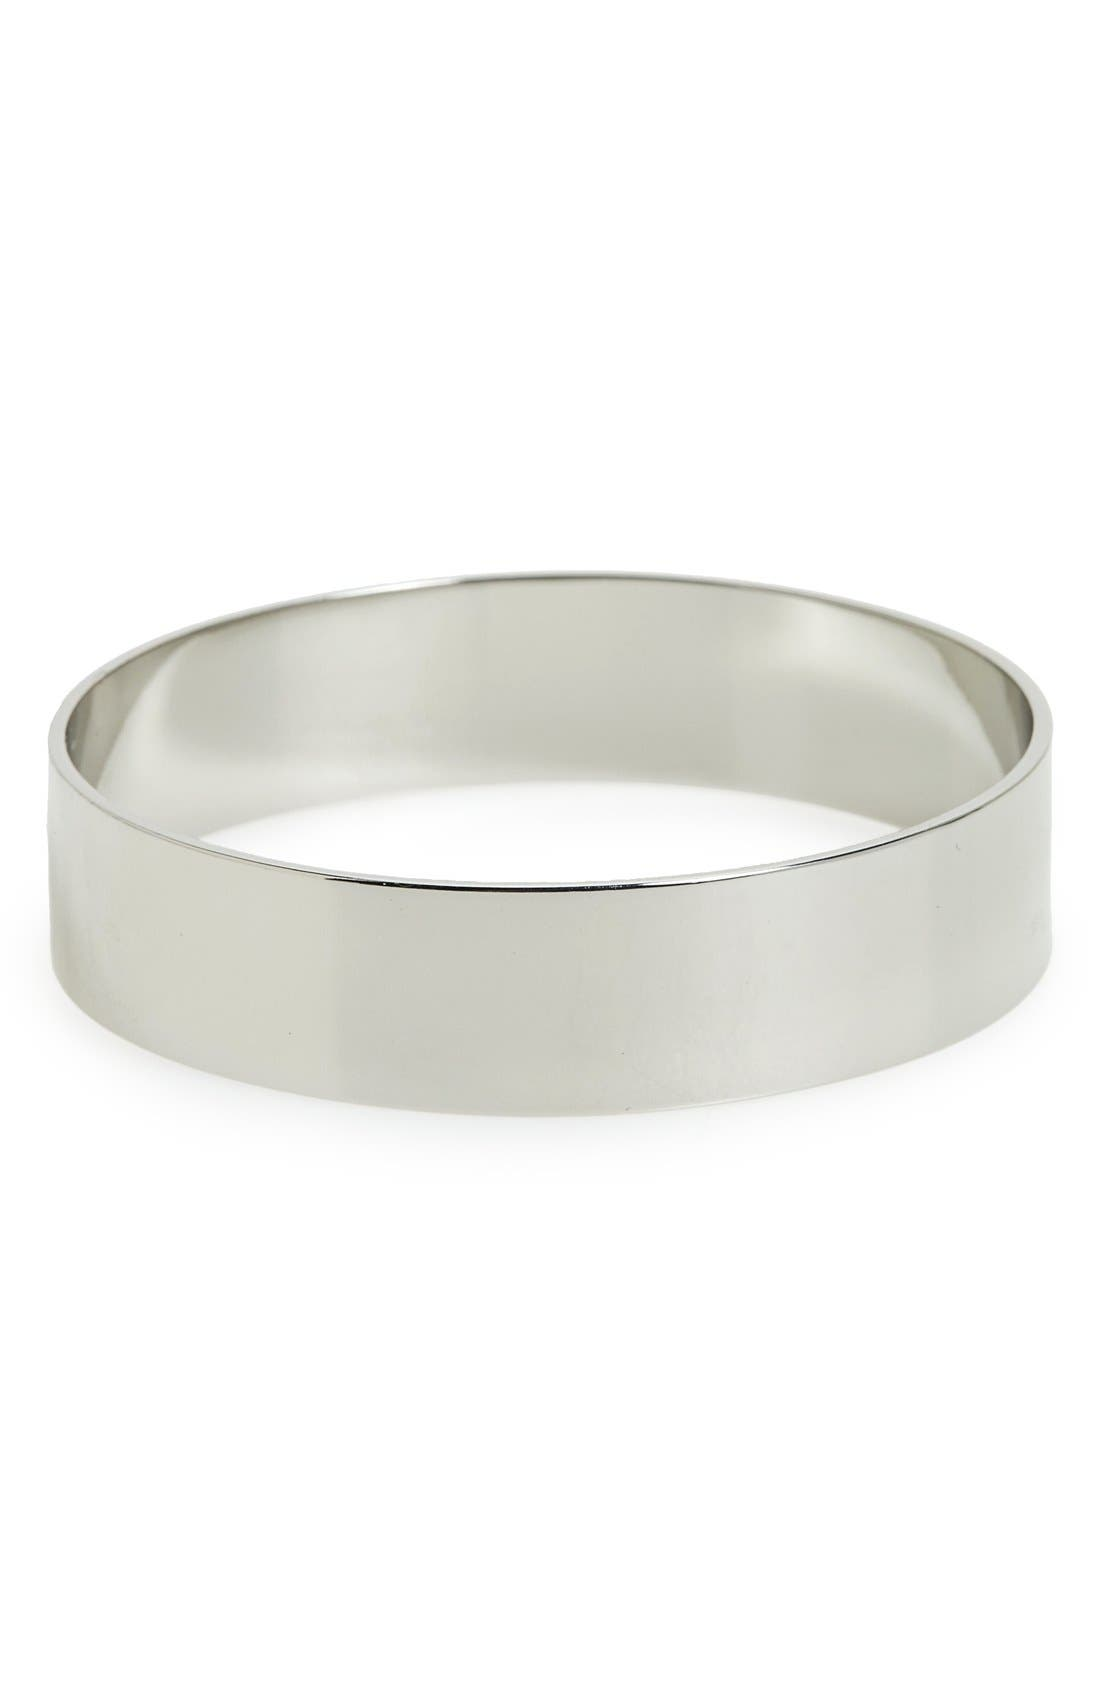 Alternate Image 1 Selected - Nordstrom Wide Band Bangle